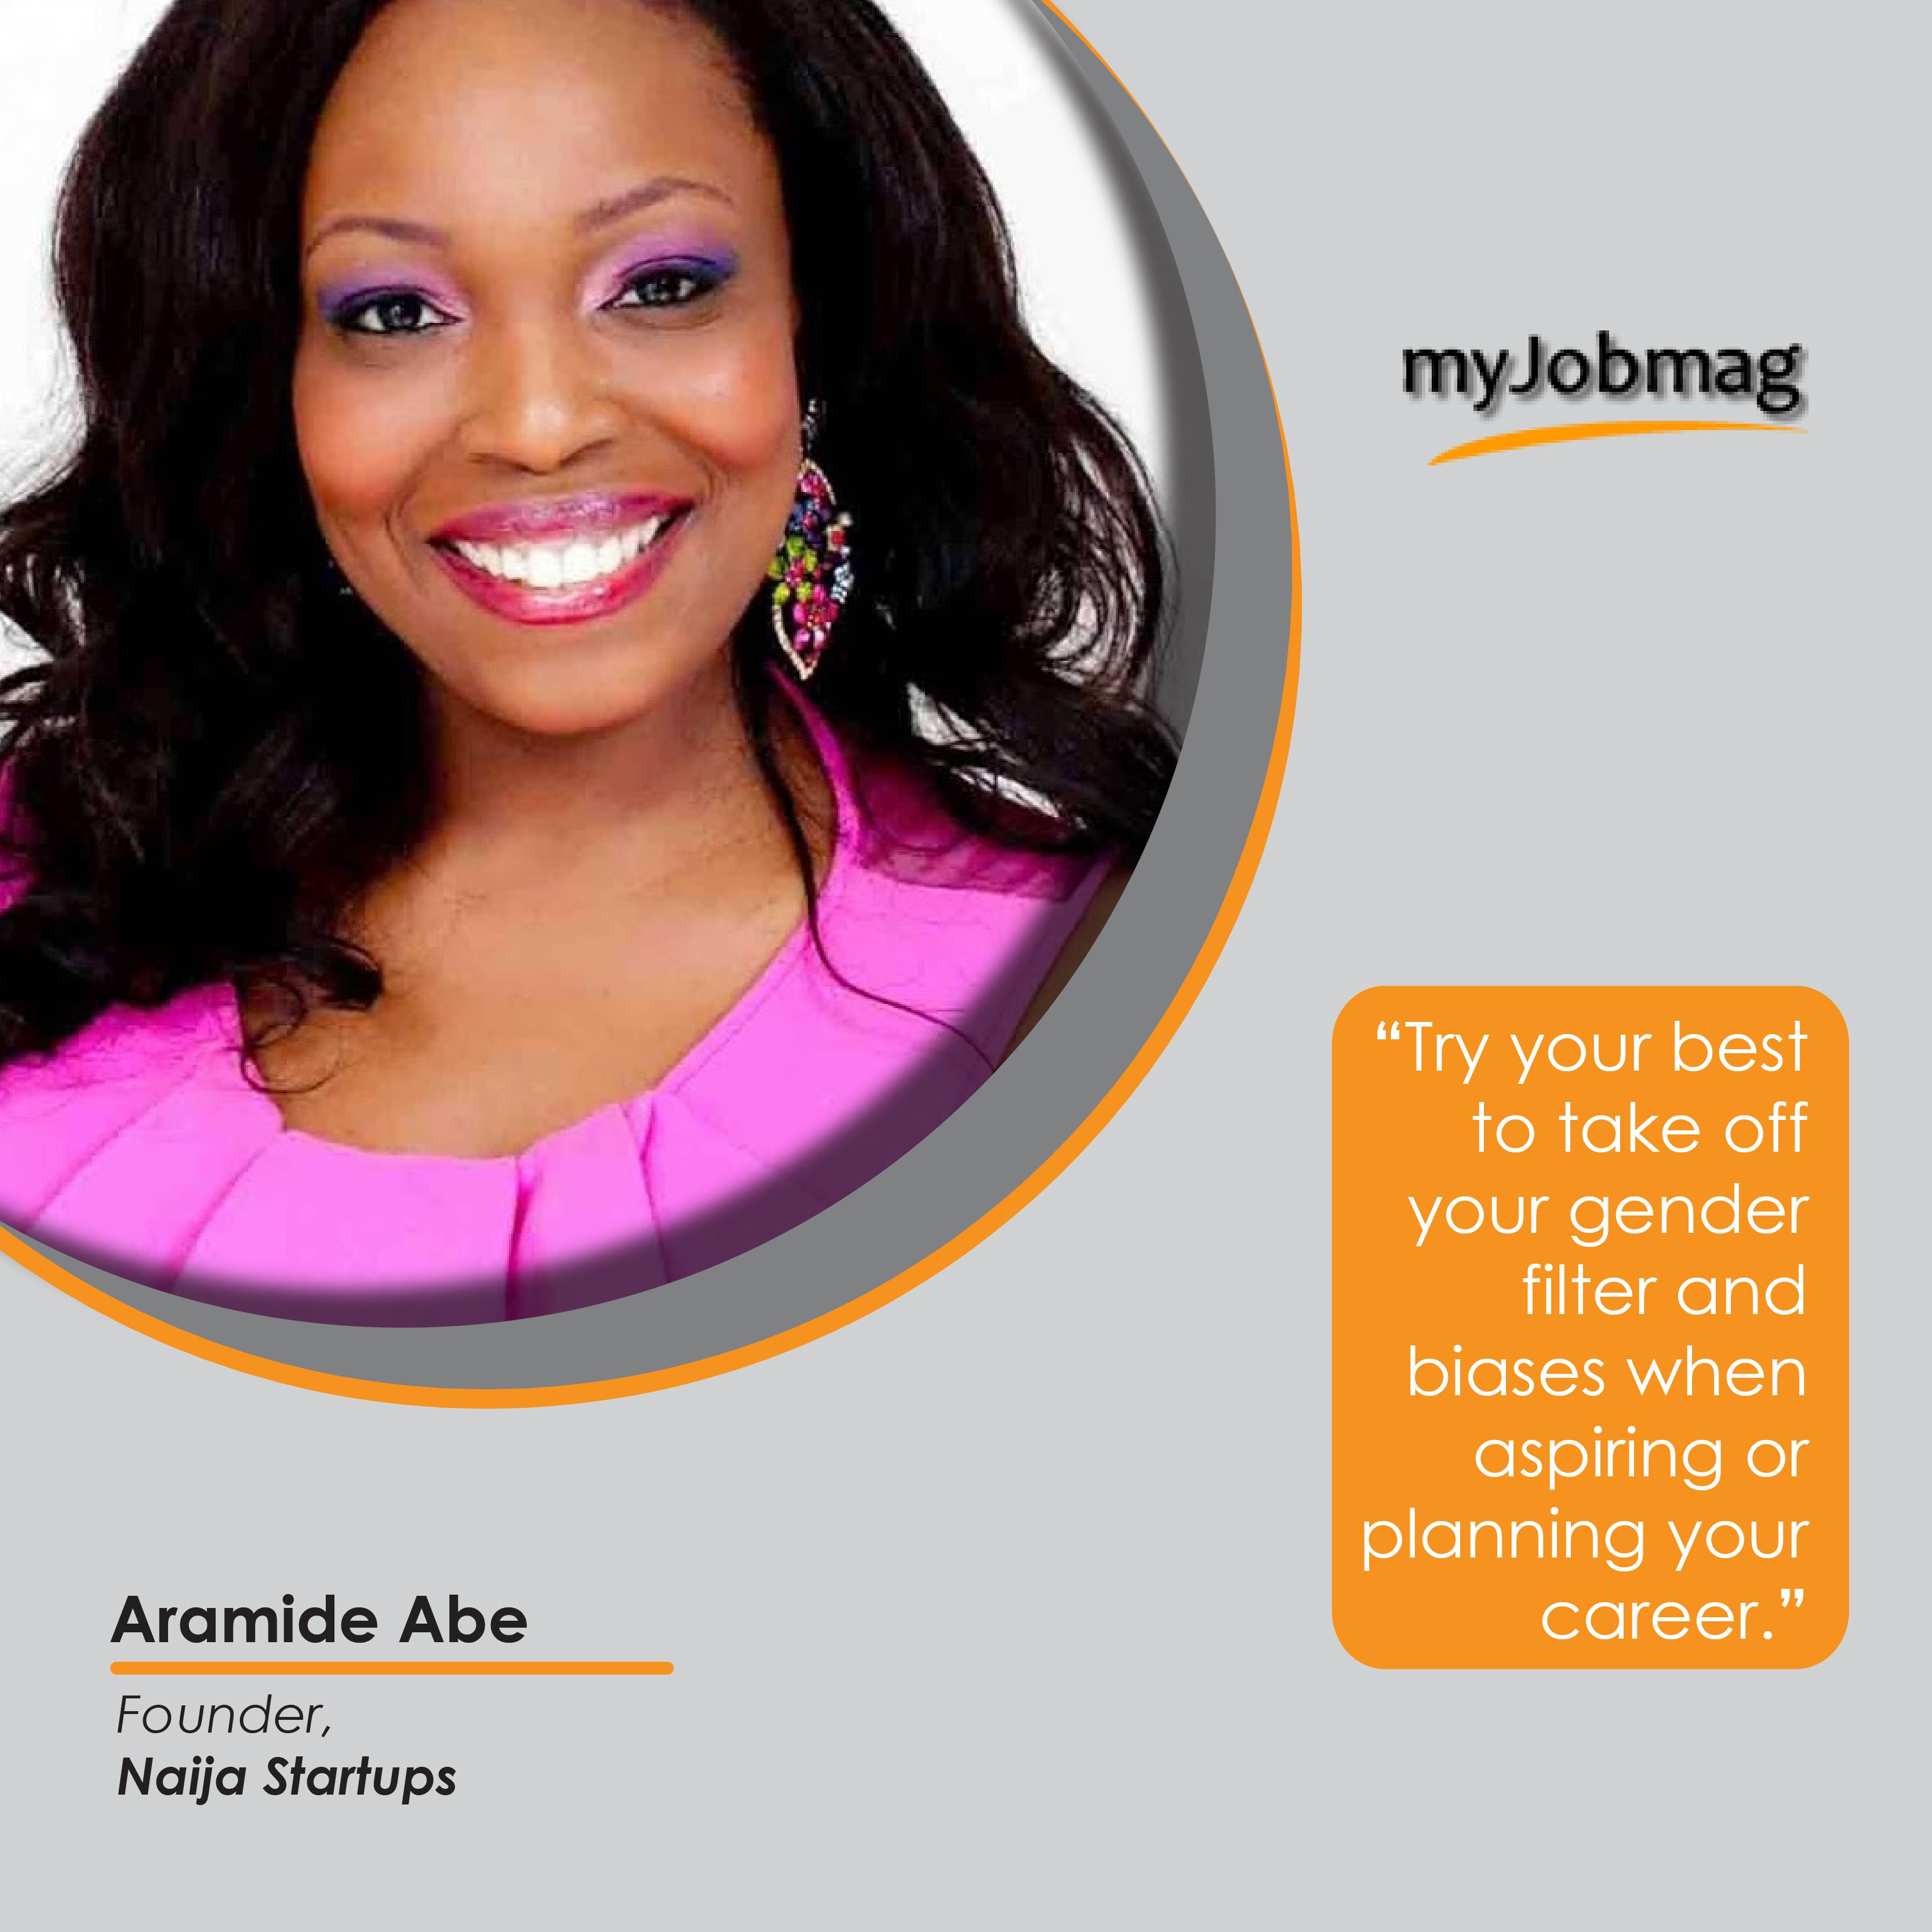 Aramide Abe career advice MyJobMag